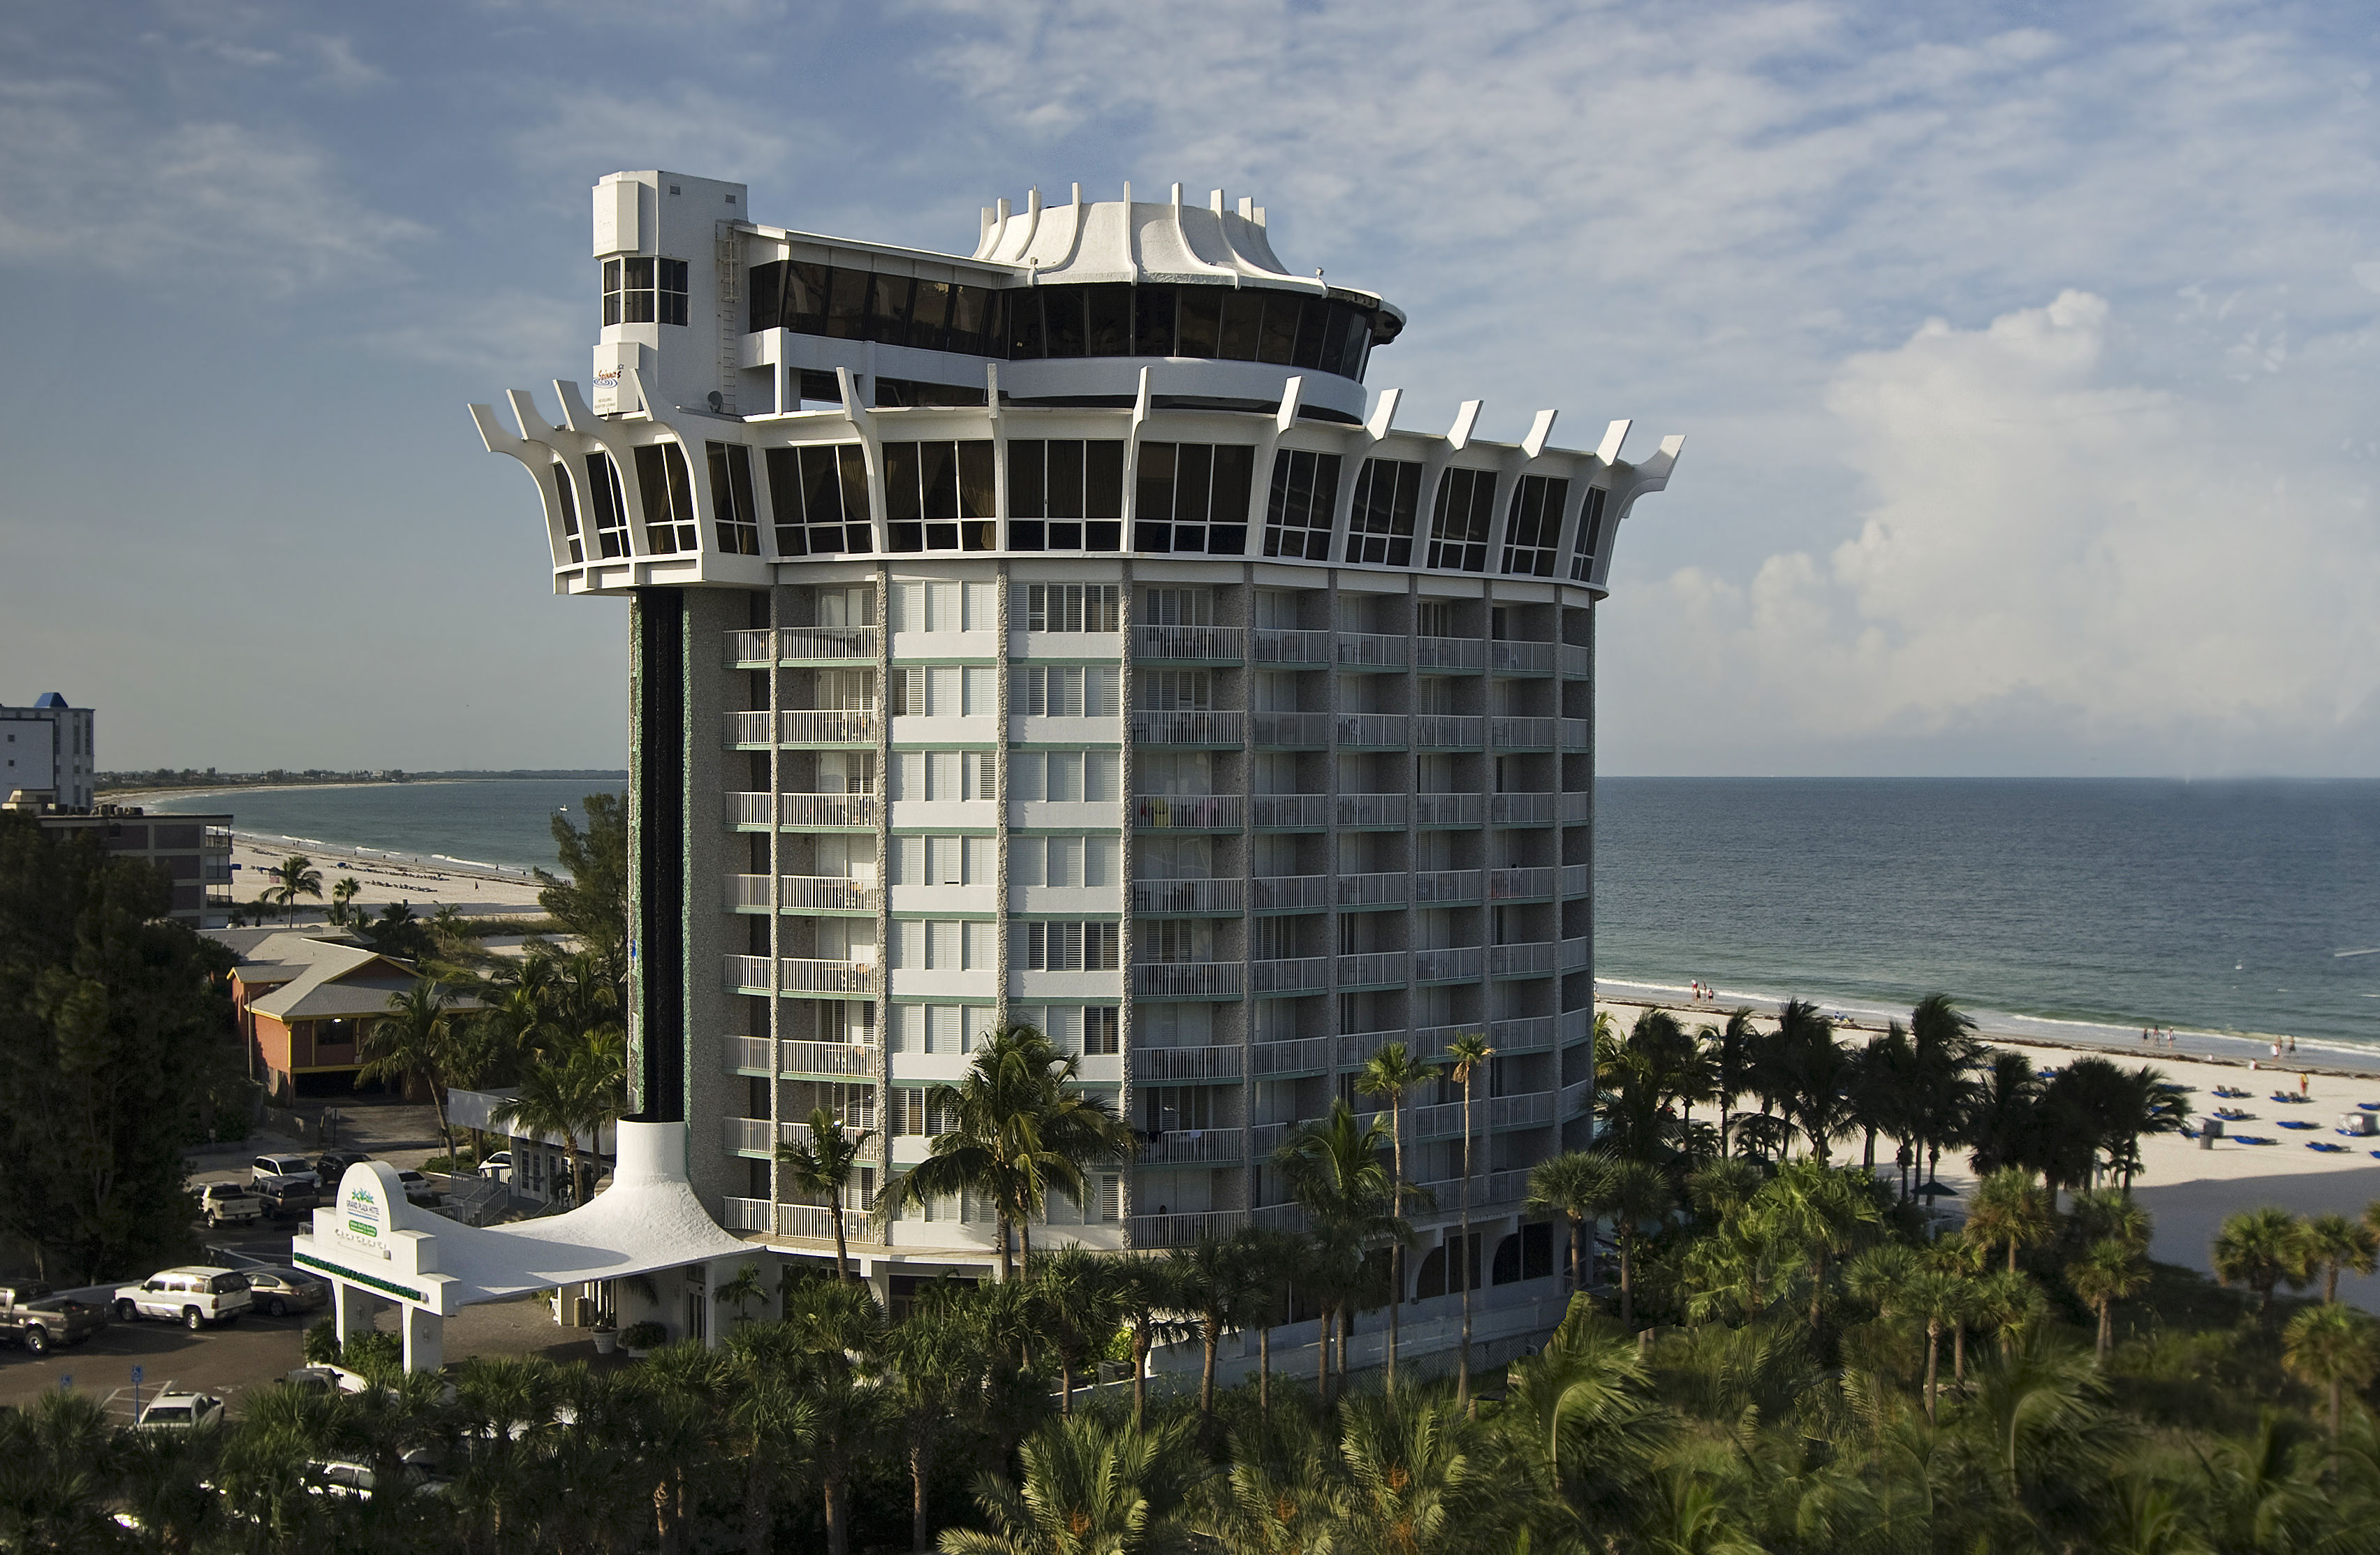 Hotel Grand Plaza Beachfront St Pete Beach Fl 3 United States From Us 190 Booked